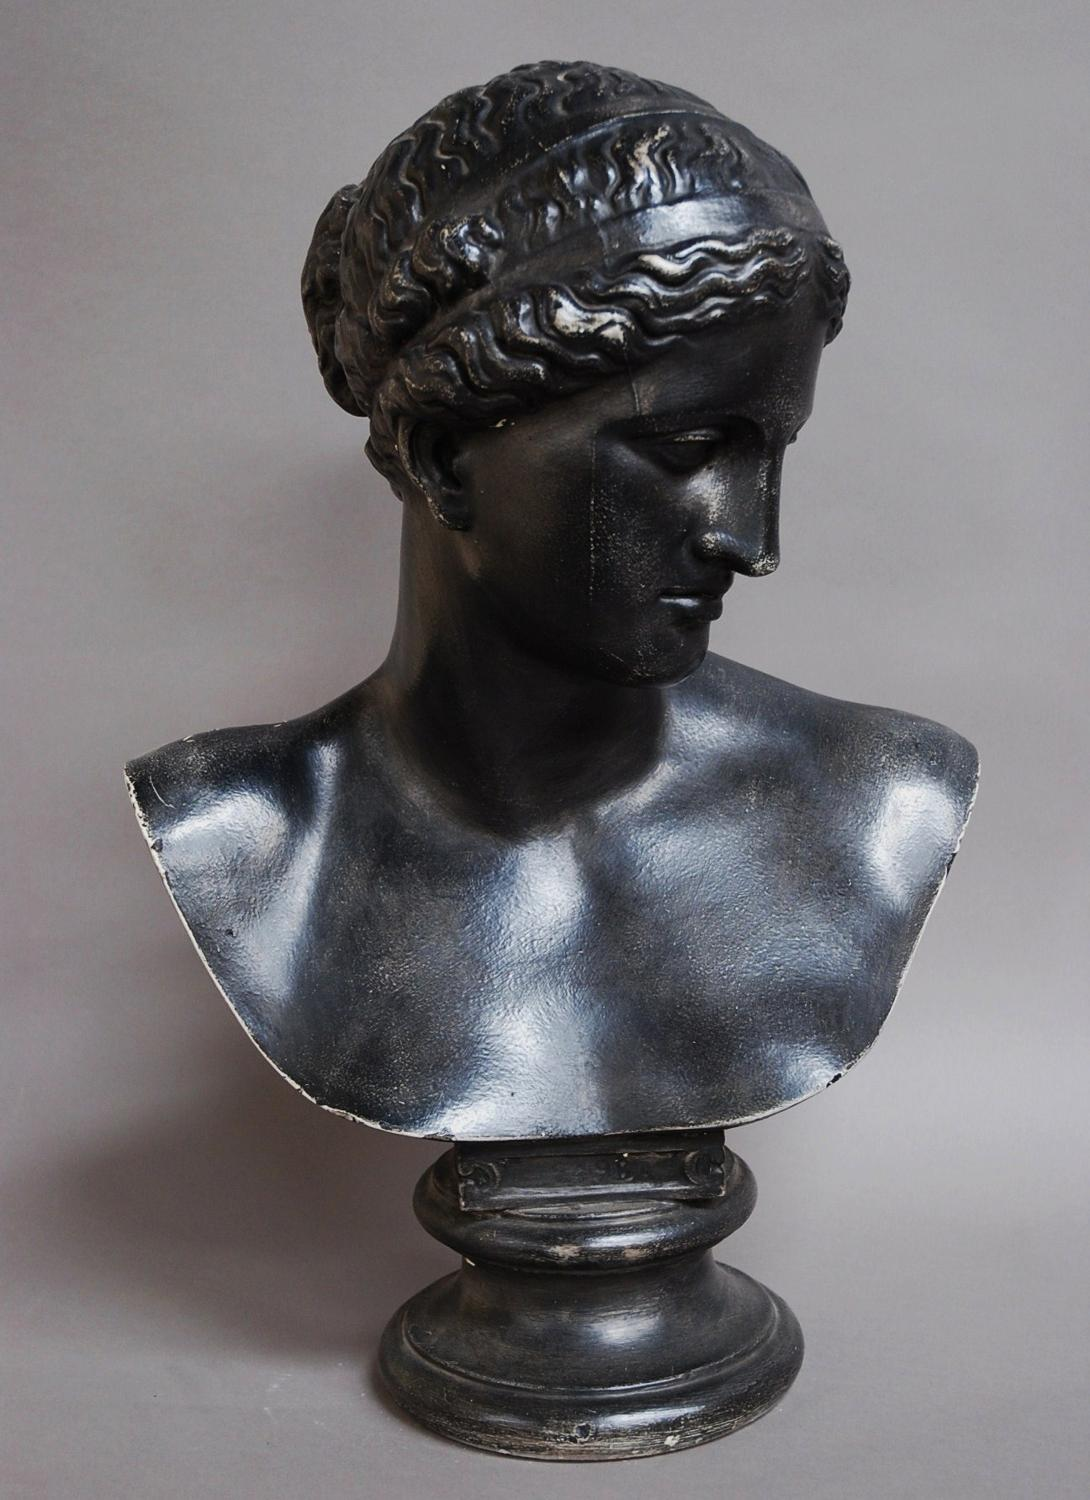 19thc Classical plaster bust by D Brucciani